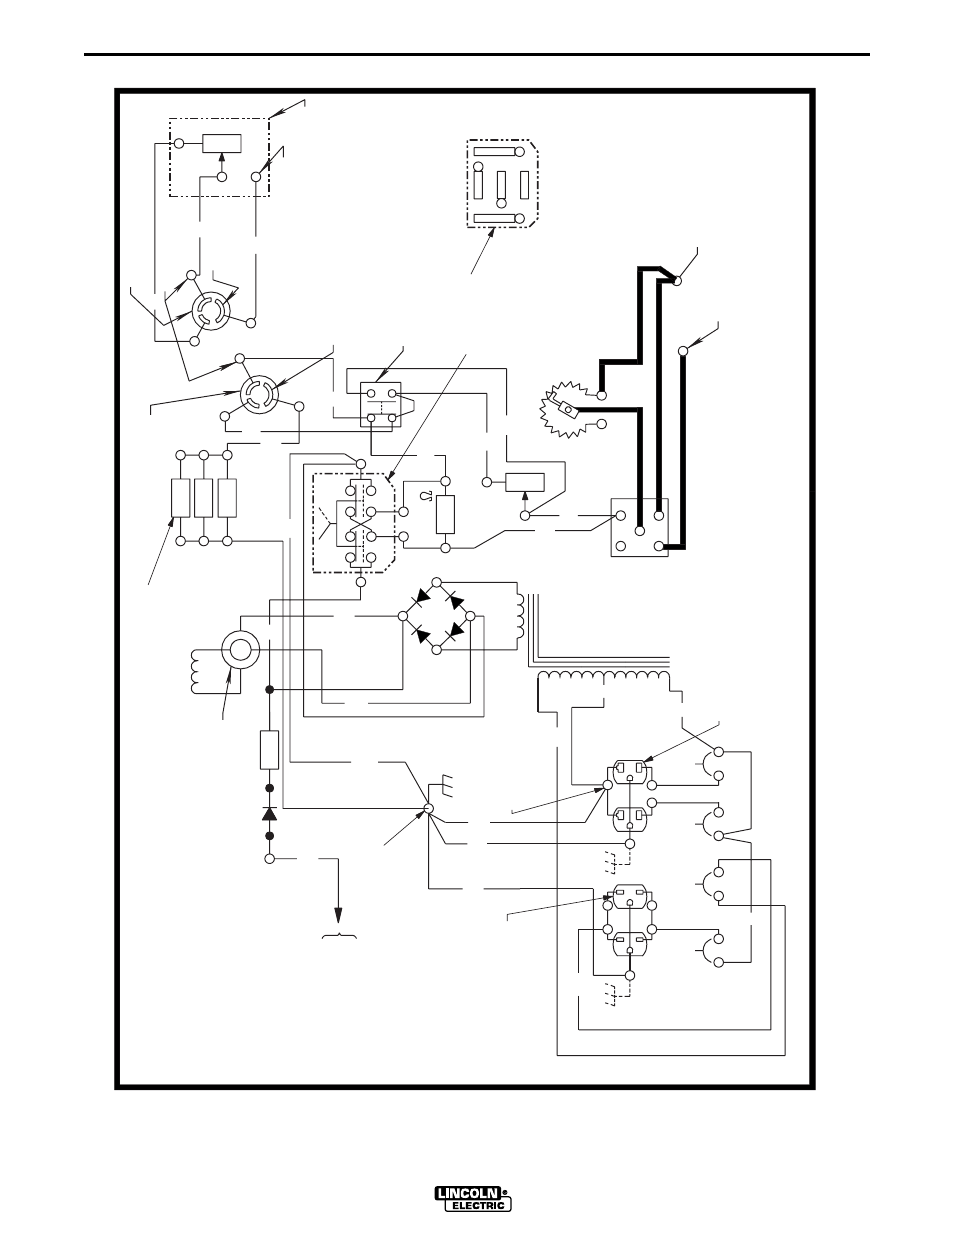 Tig Welder Wiring Diagram Lincoln Diagrams Sae400 Weldn Air Control Sae 400 Harley Rake